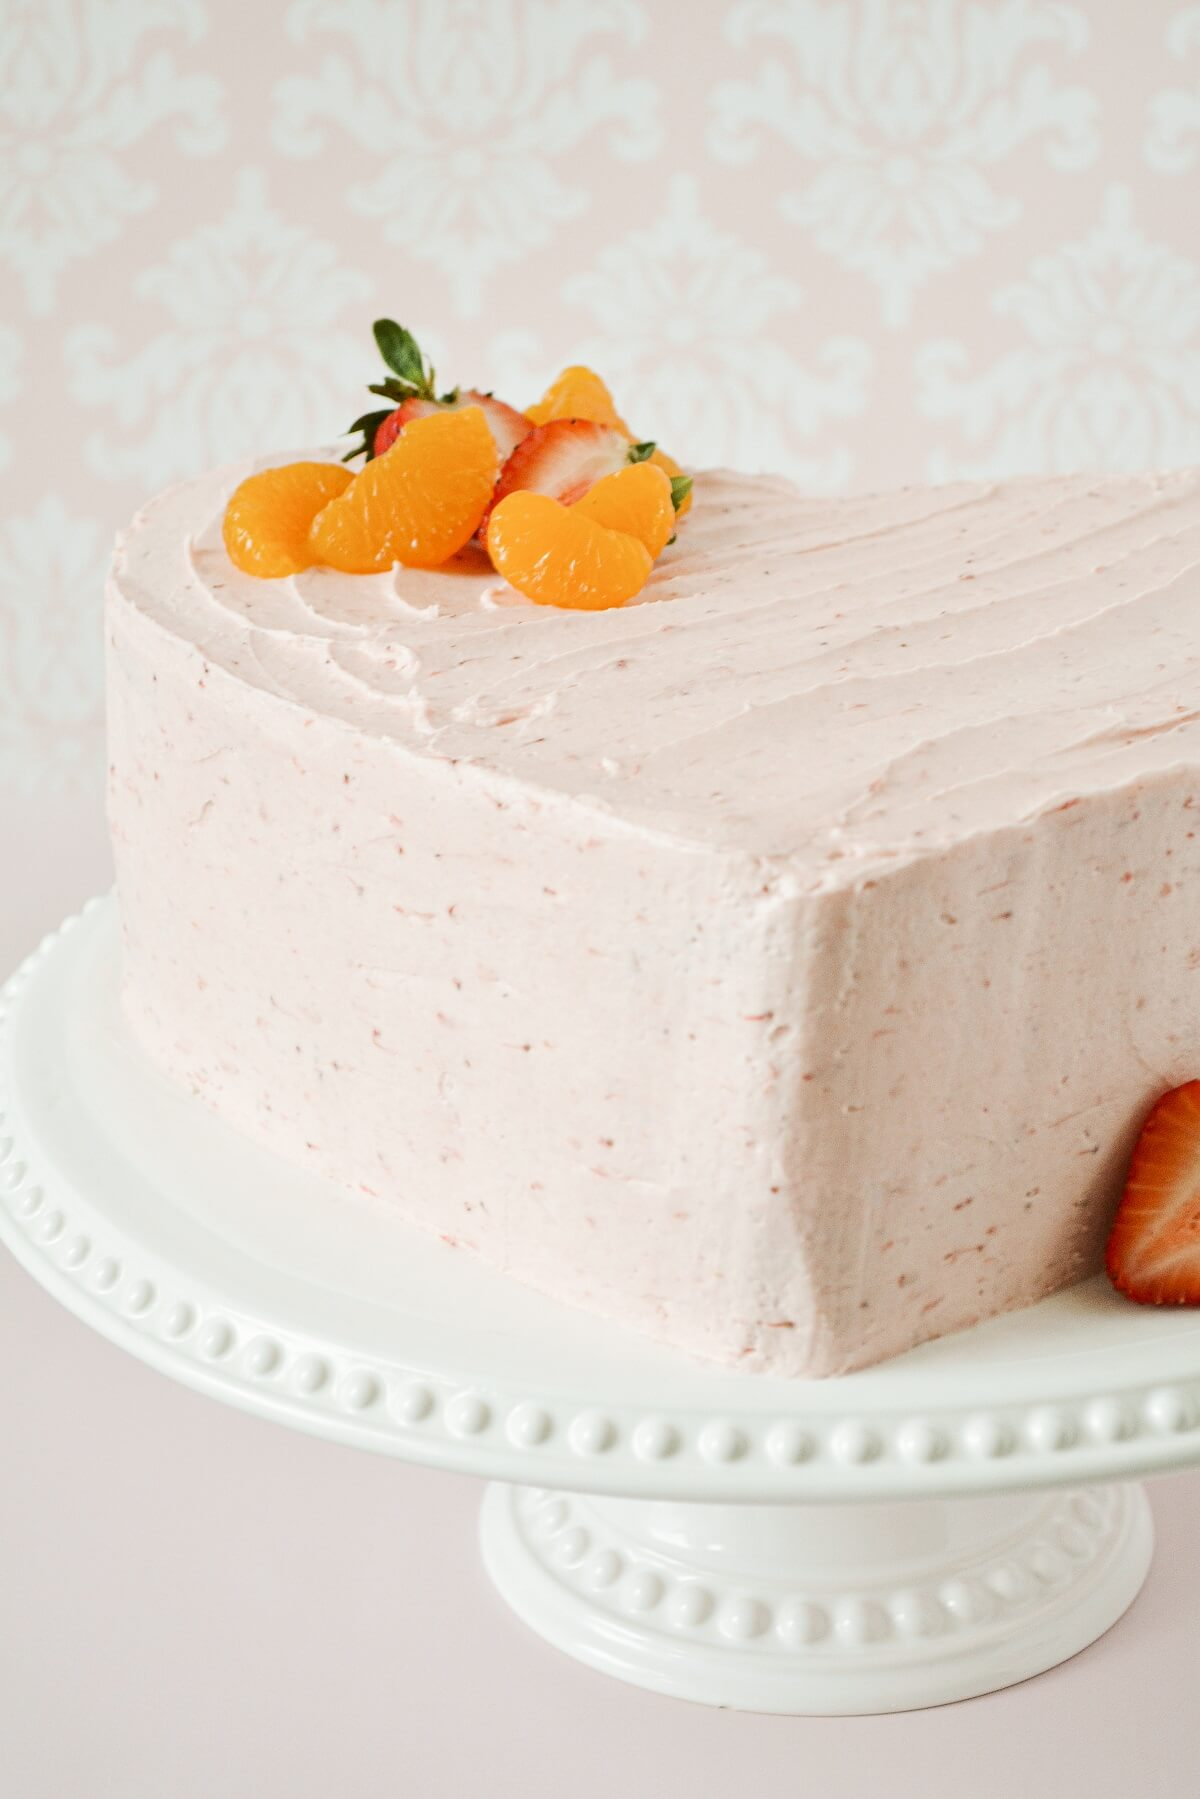 Heart shaped strawberry orange cake, topped with sliced strawberries and mandarin oranges.